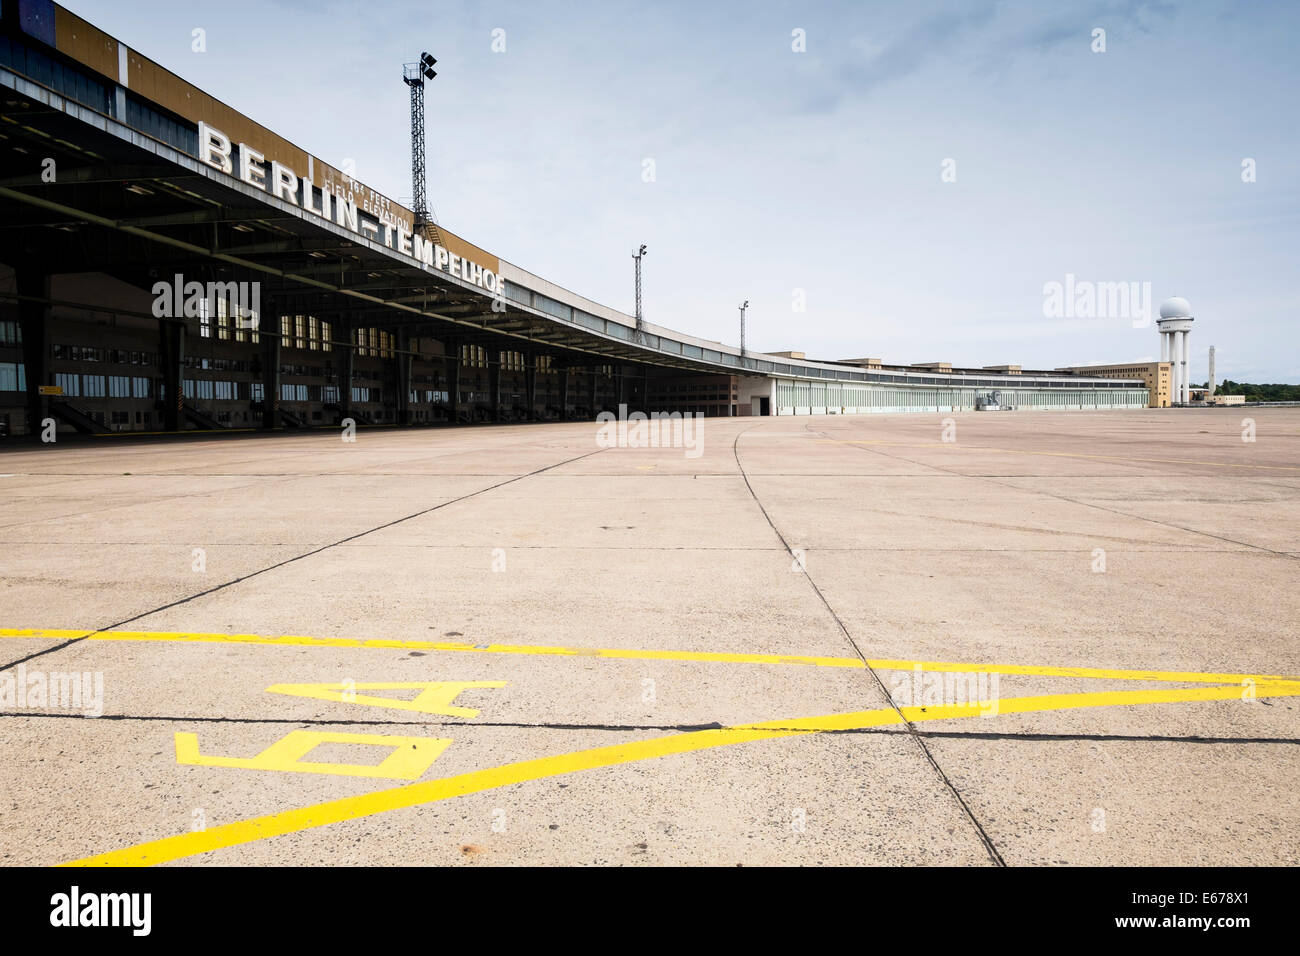 view of old Terminal buildings at Tempelhof Airport in Berlin Germany - Stock Image